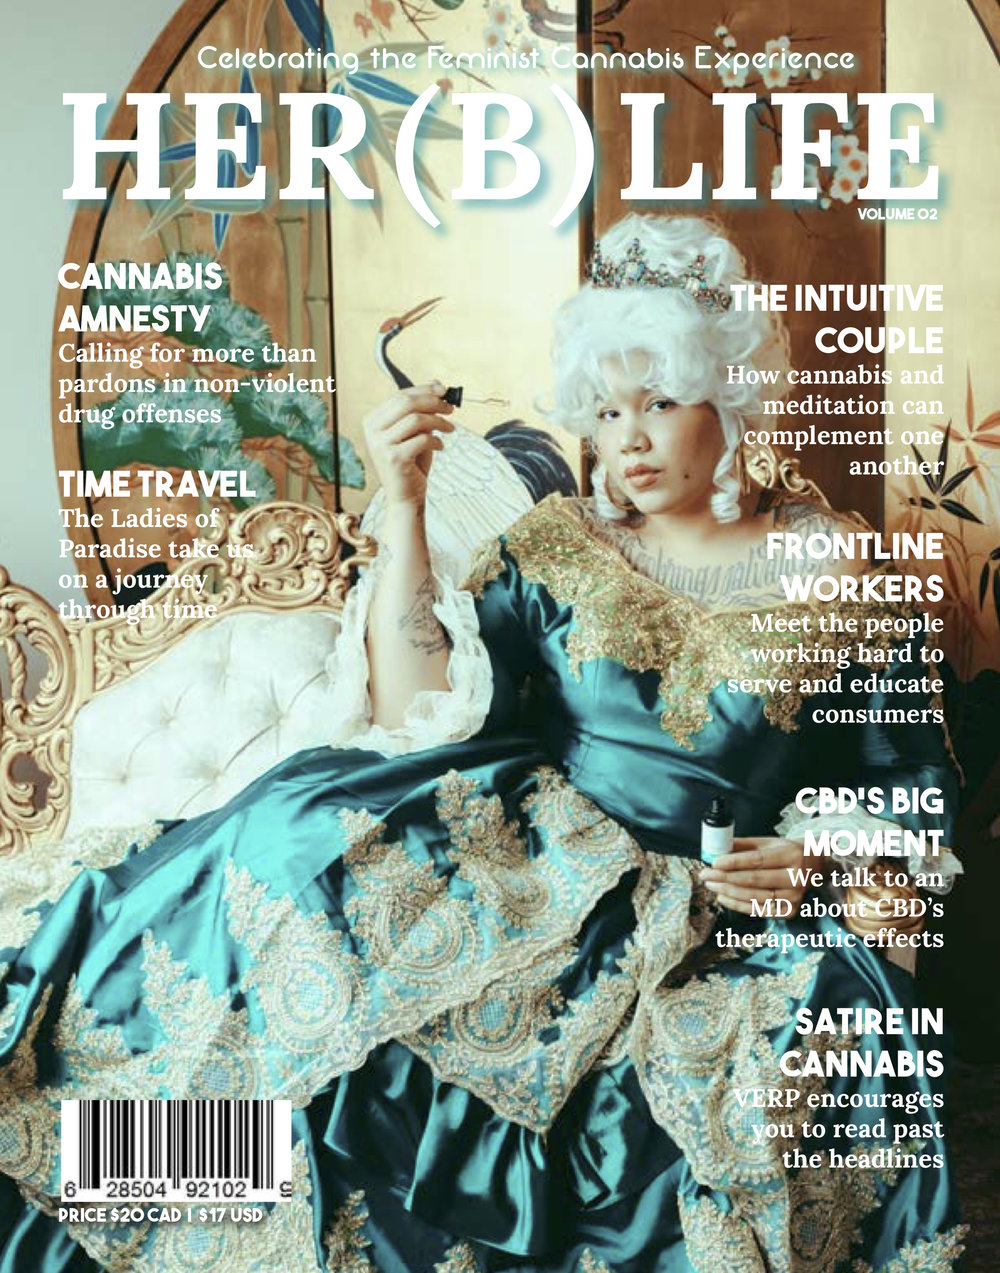 Kerestin graces the cover of    The Her(B) Life Vol 02